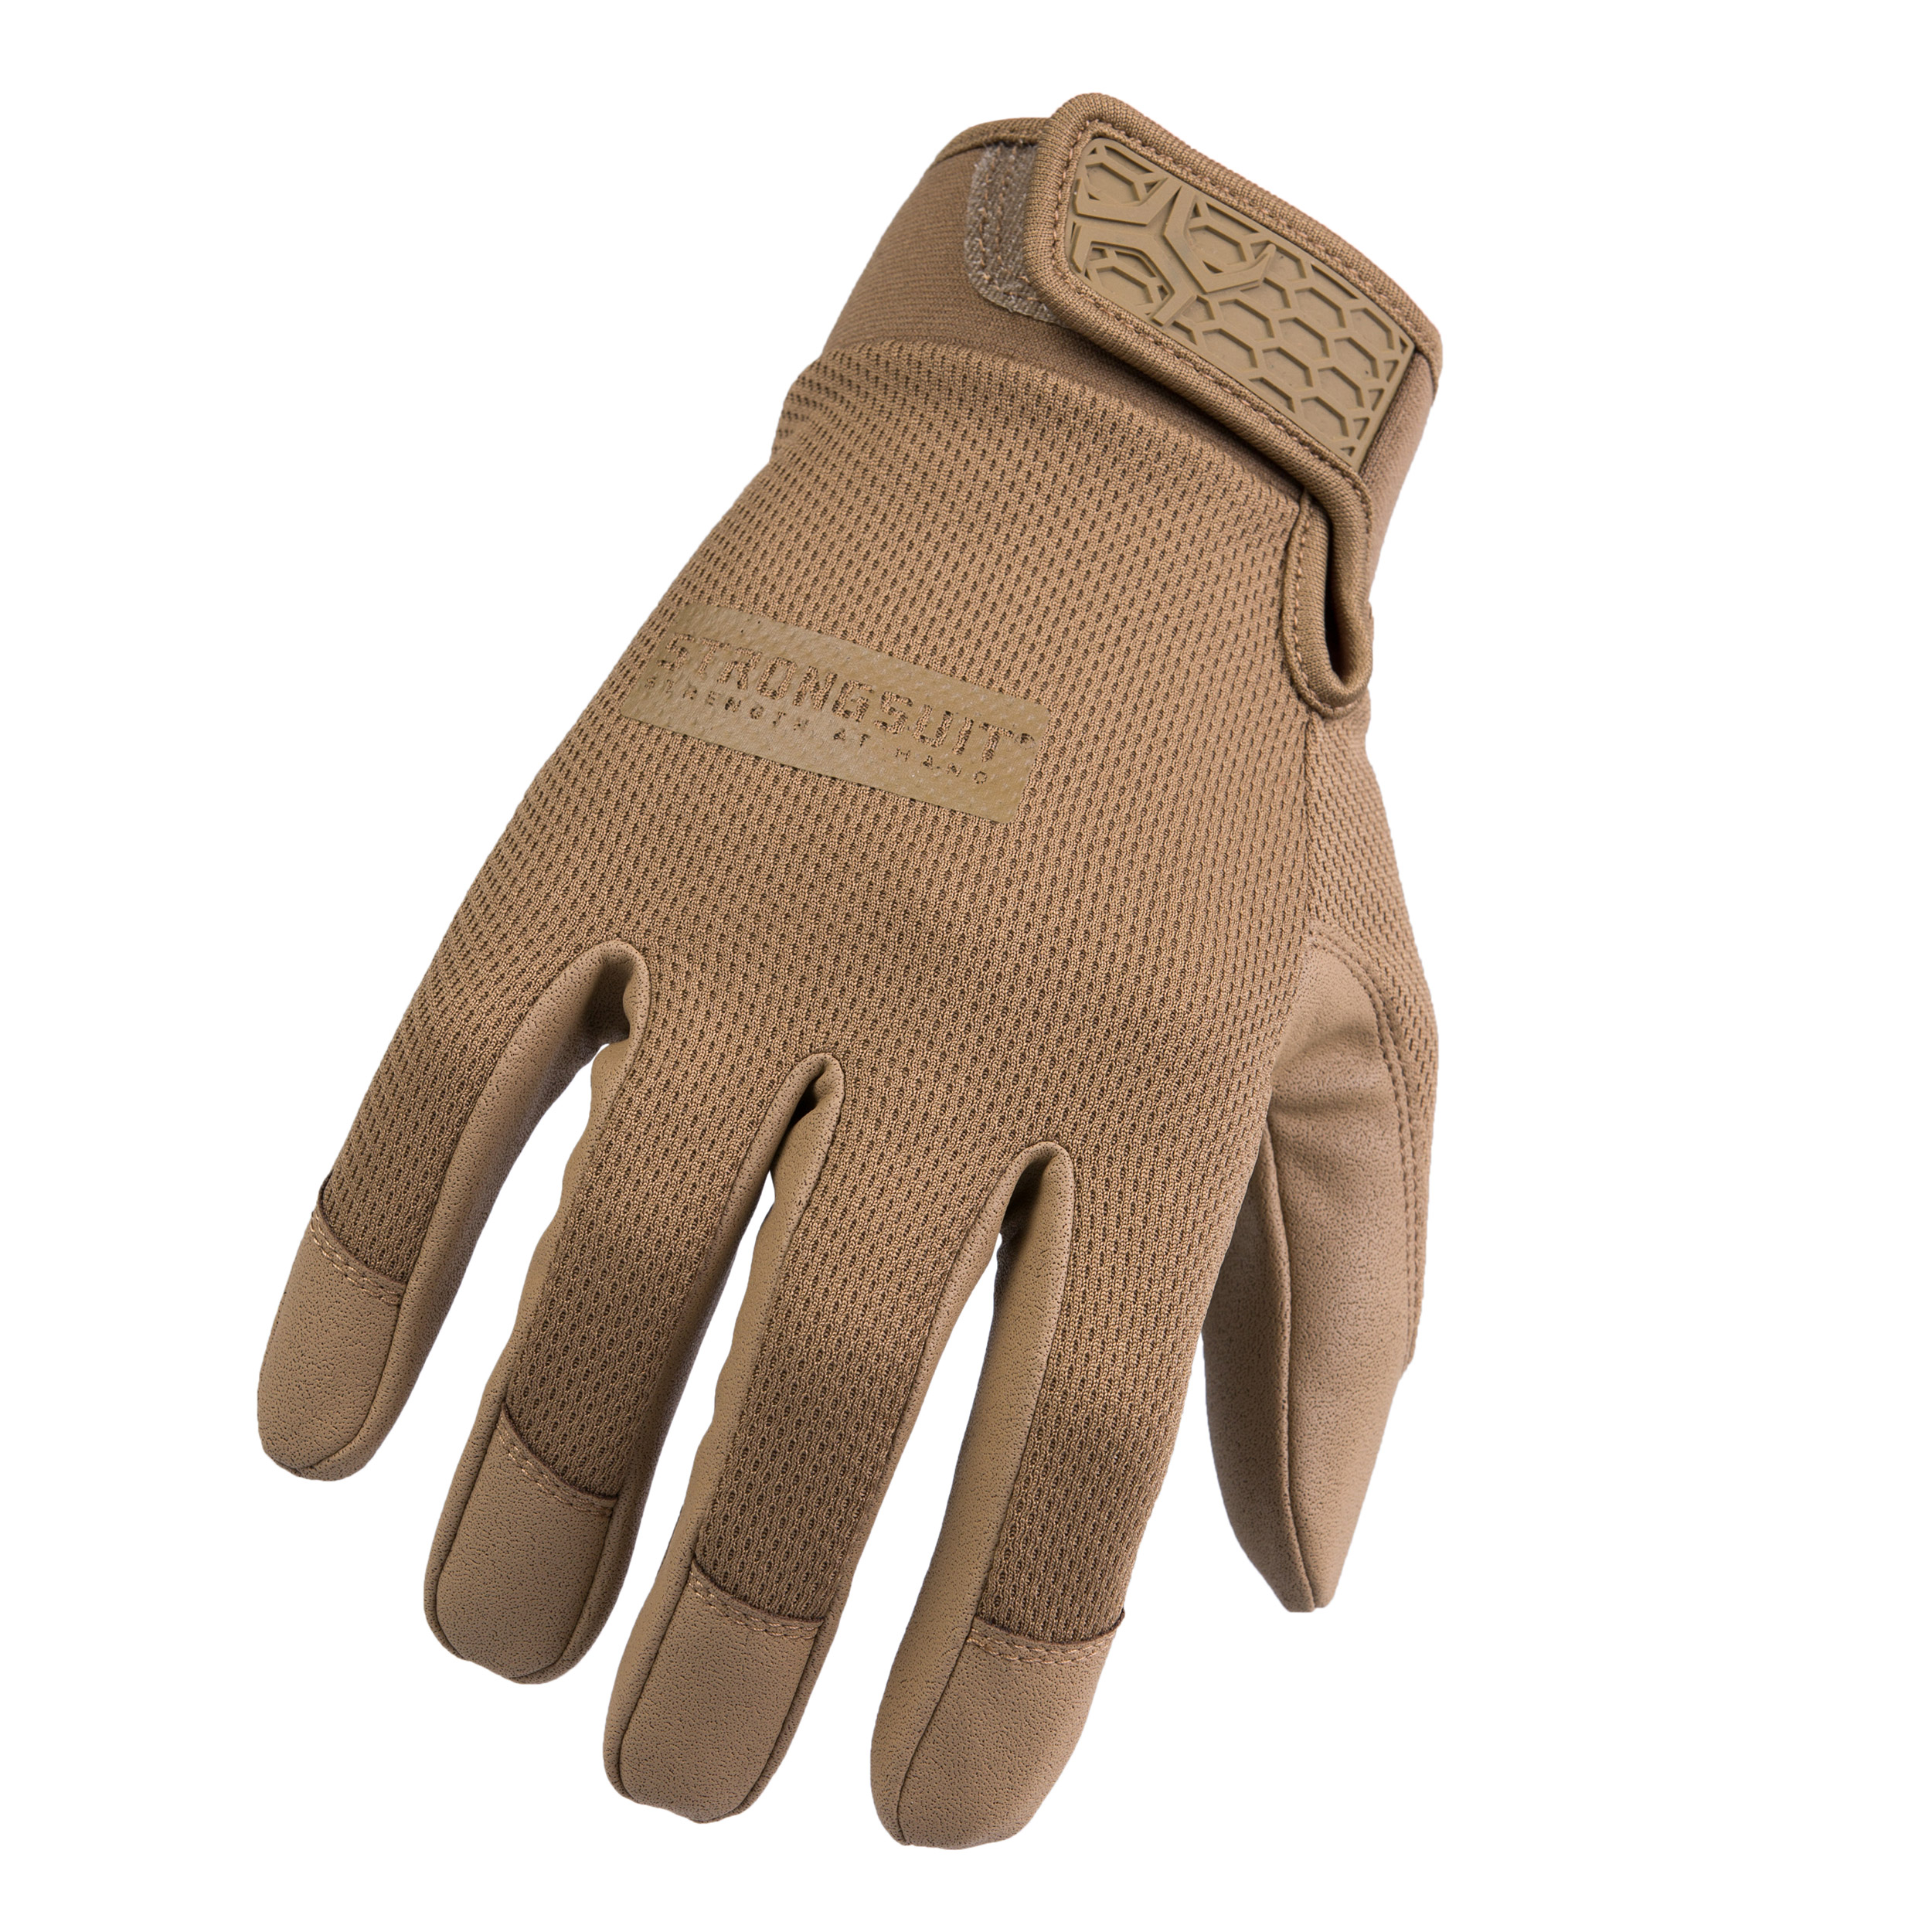 Second Skin Gloves, Coyote, Small